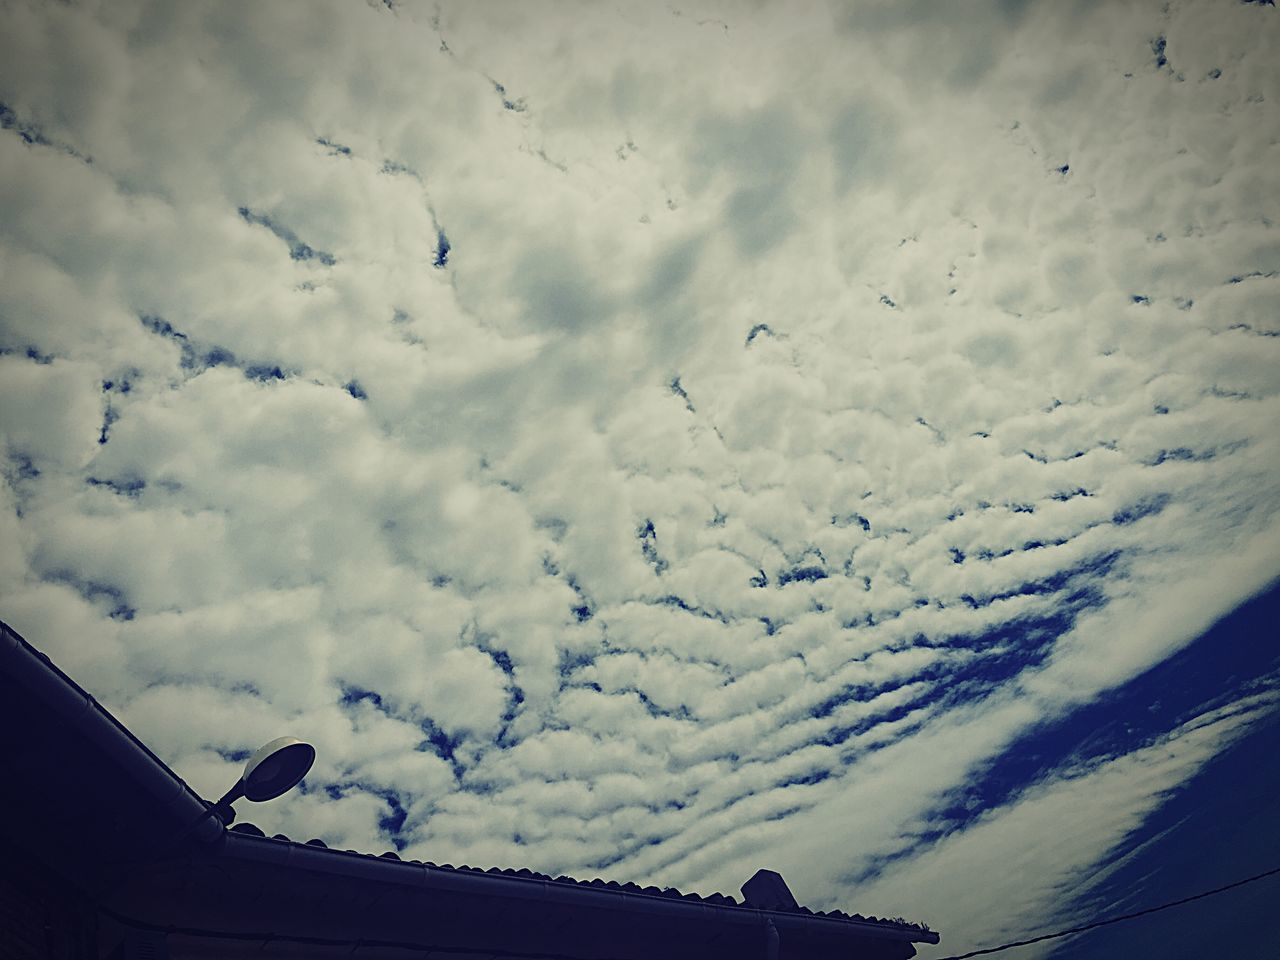 Cielo Nubes Nubesdetuciudad Sky Sky And Clouds Sky_collection Hello World Taking Photos Relaxing Spain_gallery Rural Life Landscape_photography Landscape_lovers EyeEmBestPics Eyeemphotography Castillayleon EyeEm Best Shots - Landscape IPhone IPhoneography EyeEm Gallery EyeEm Best Shots Eyemphotography Eyem Gallery Tejados Clouds And Sky